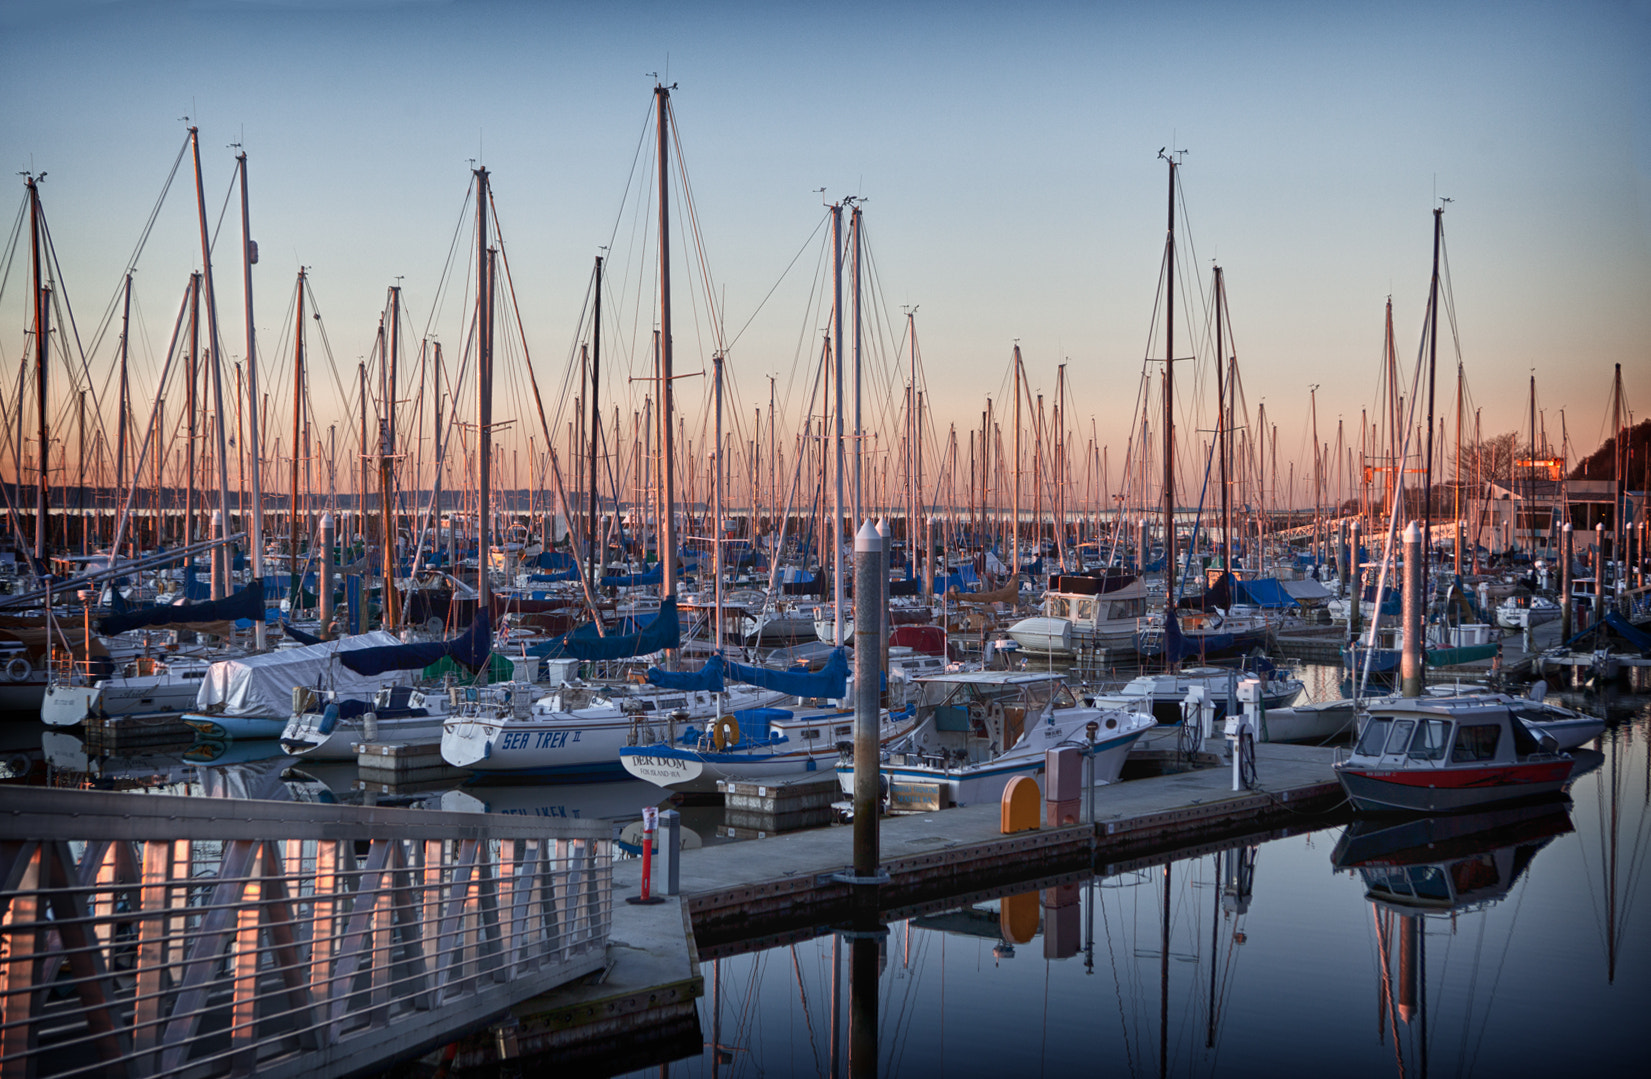 Photograph Shilshole Bay Marina by Jack Markle on 500px